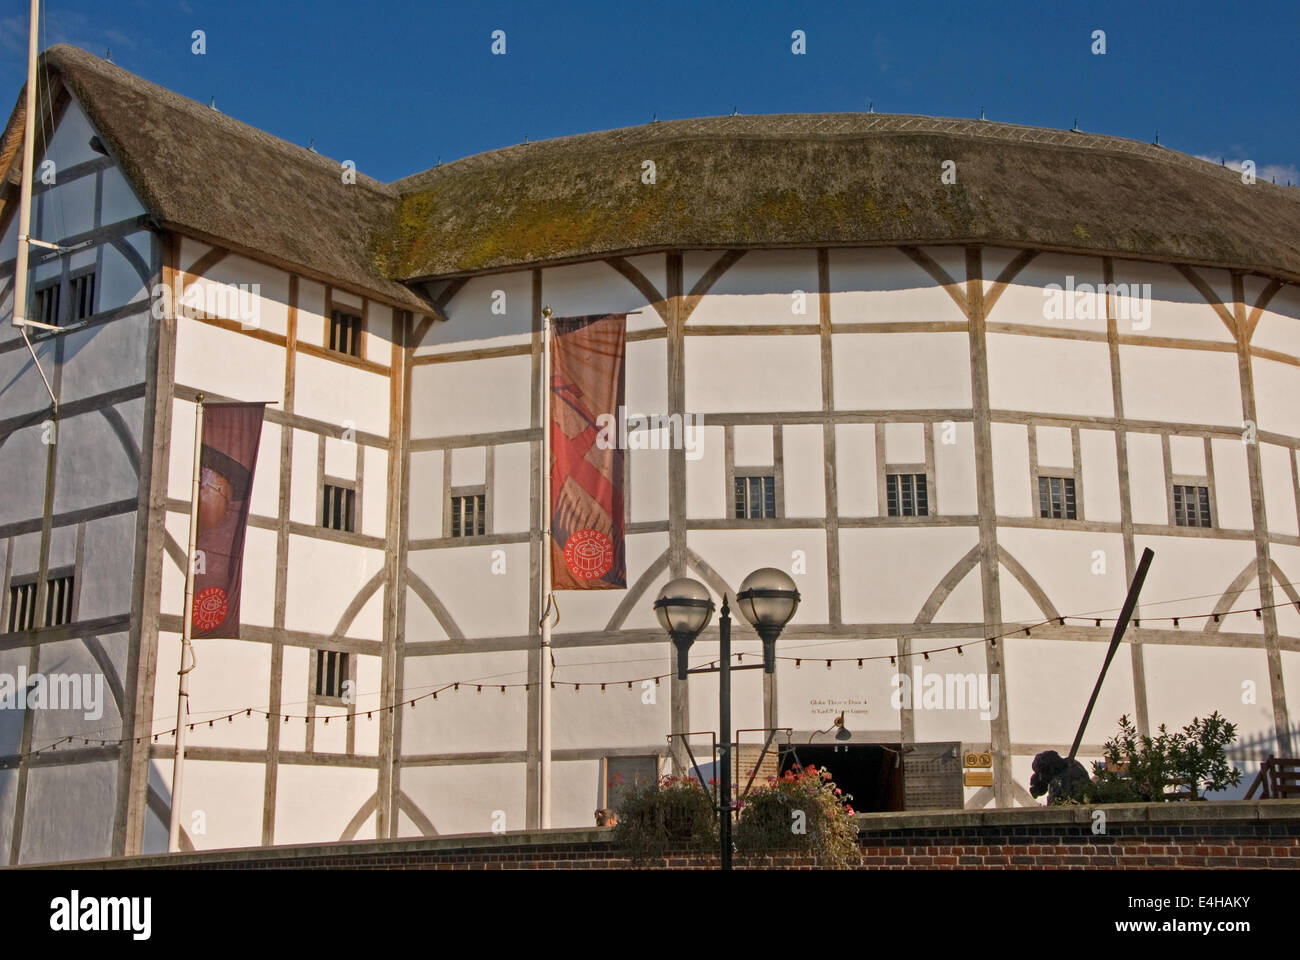 The Globe theatre stands on the South Bank of the River Thames in Central London - Stock Image